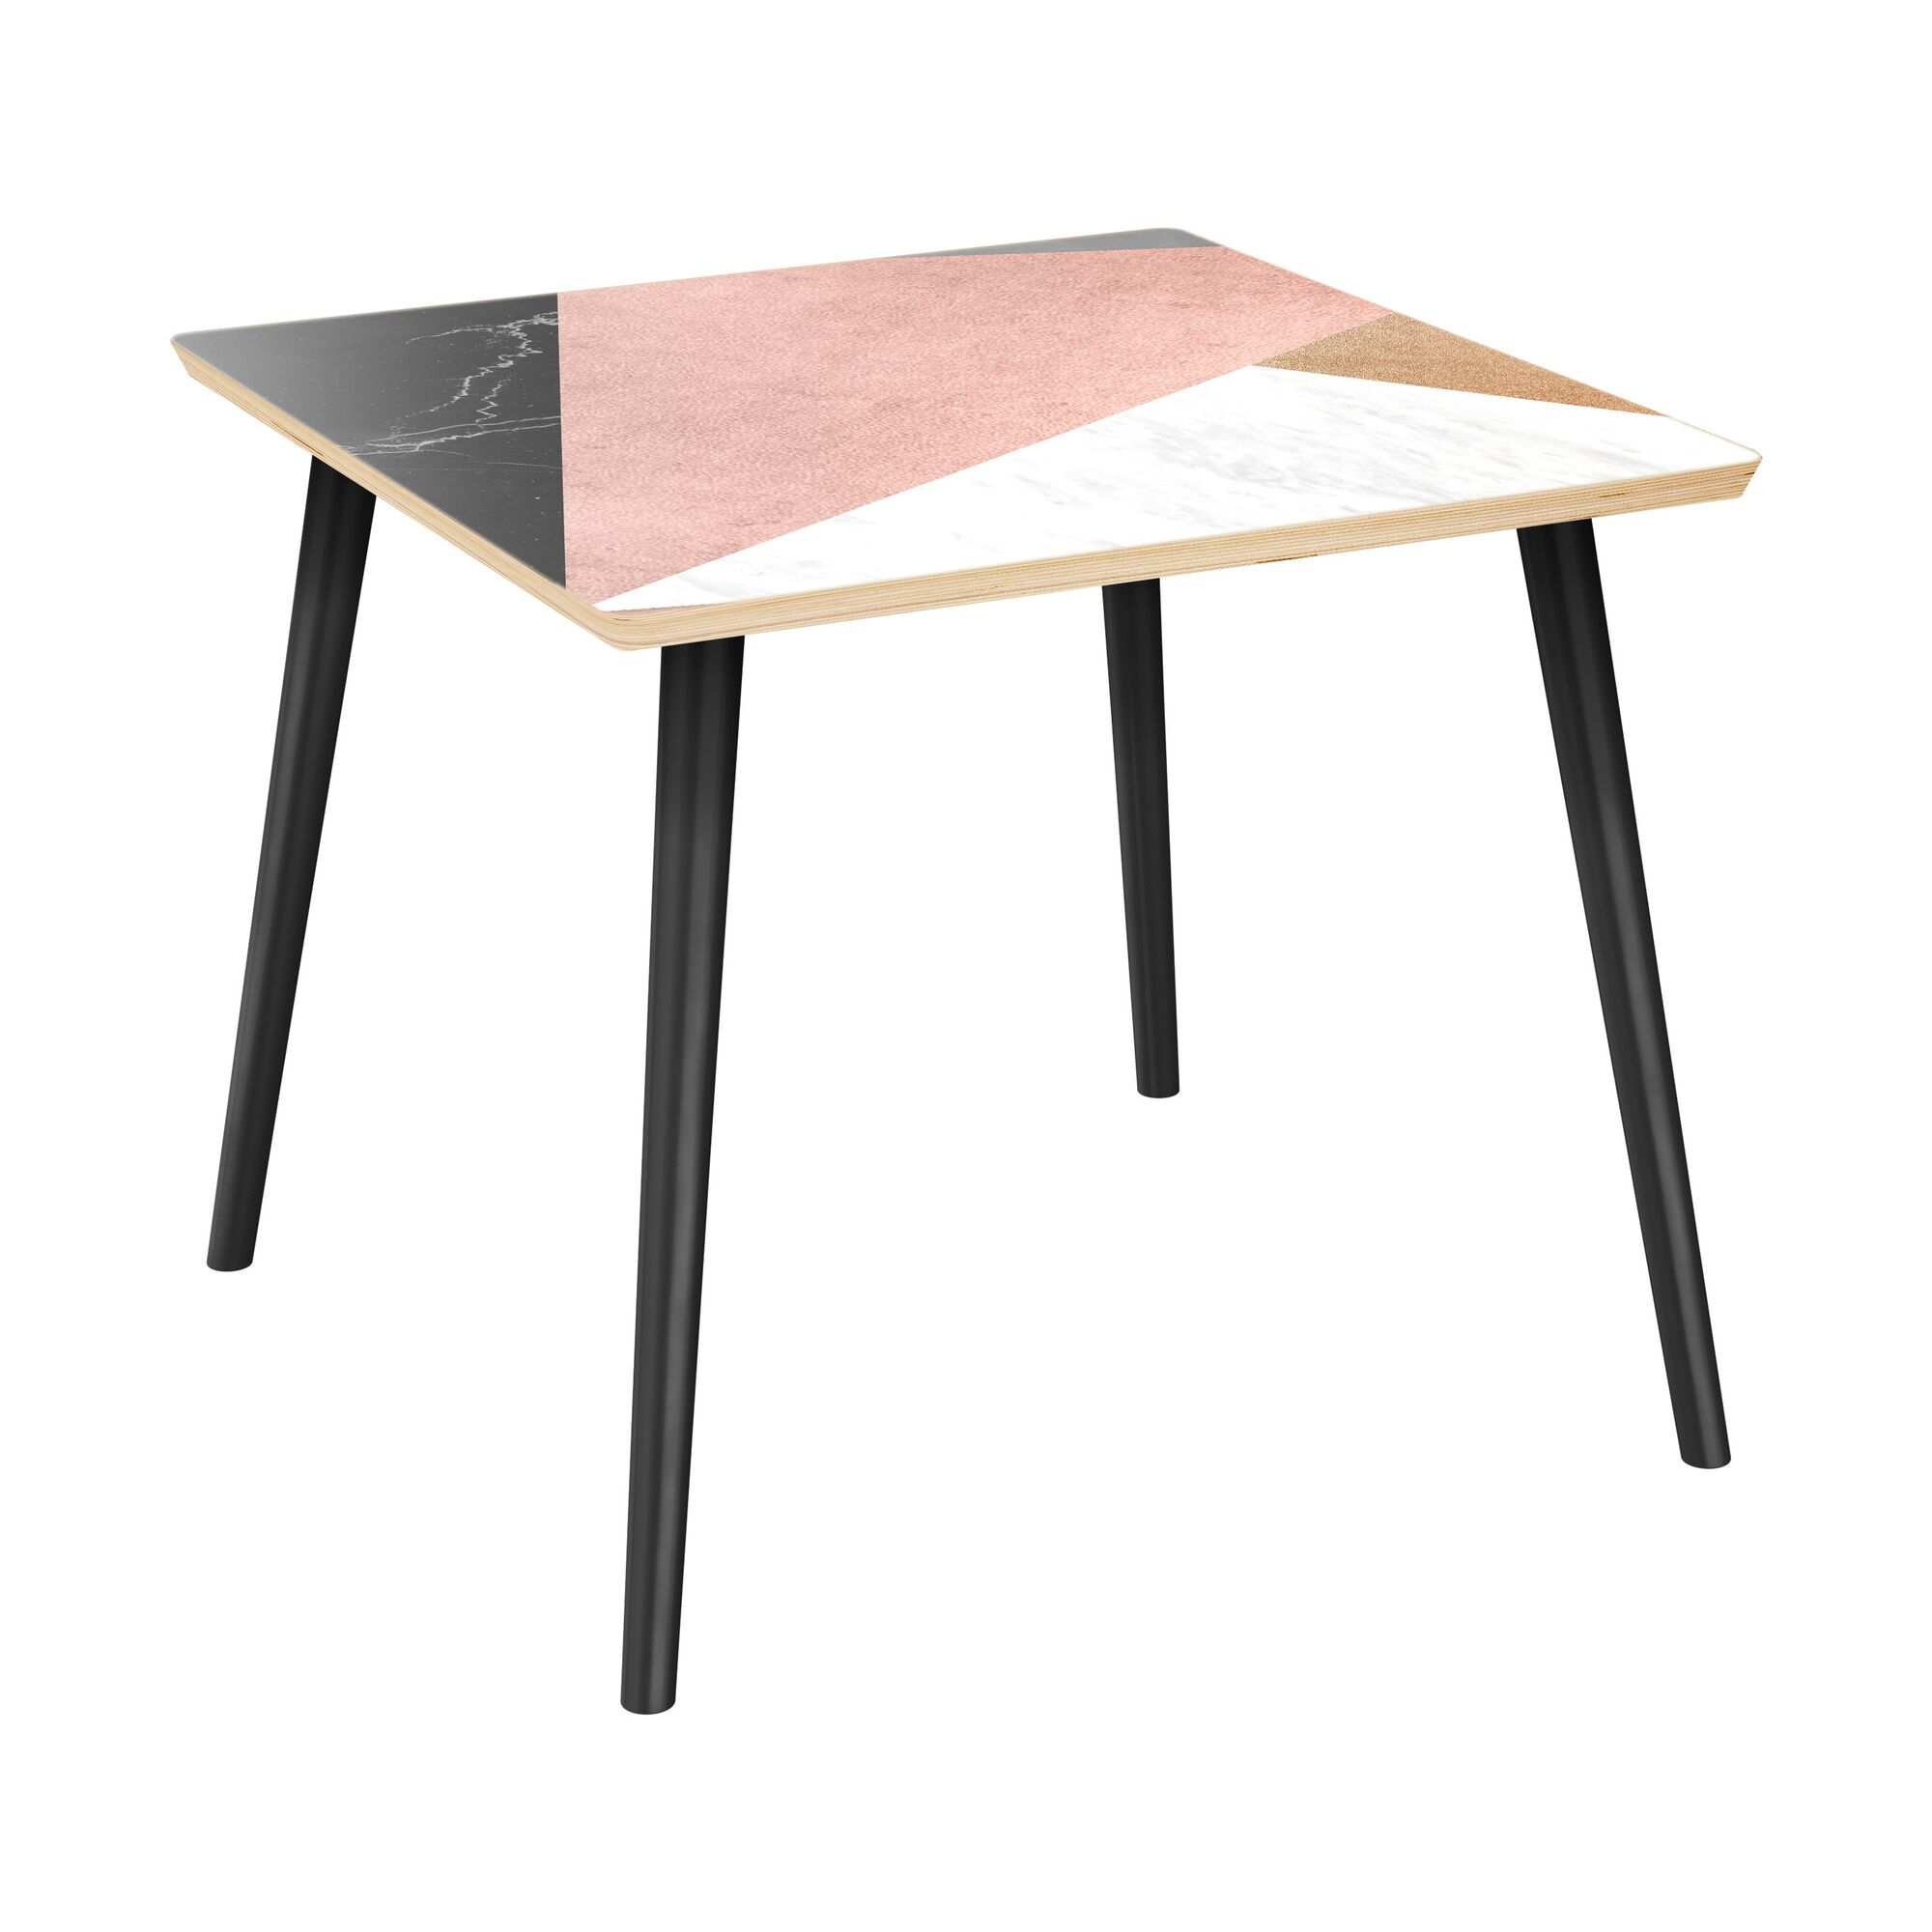 Rousey End Table Table Top Color: Natural, Table Base Color: Black